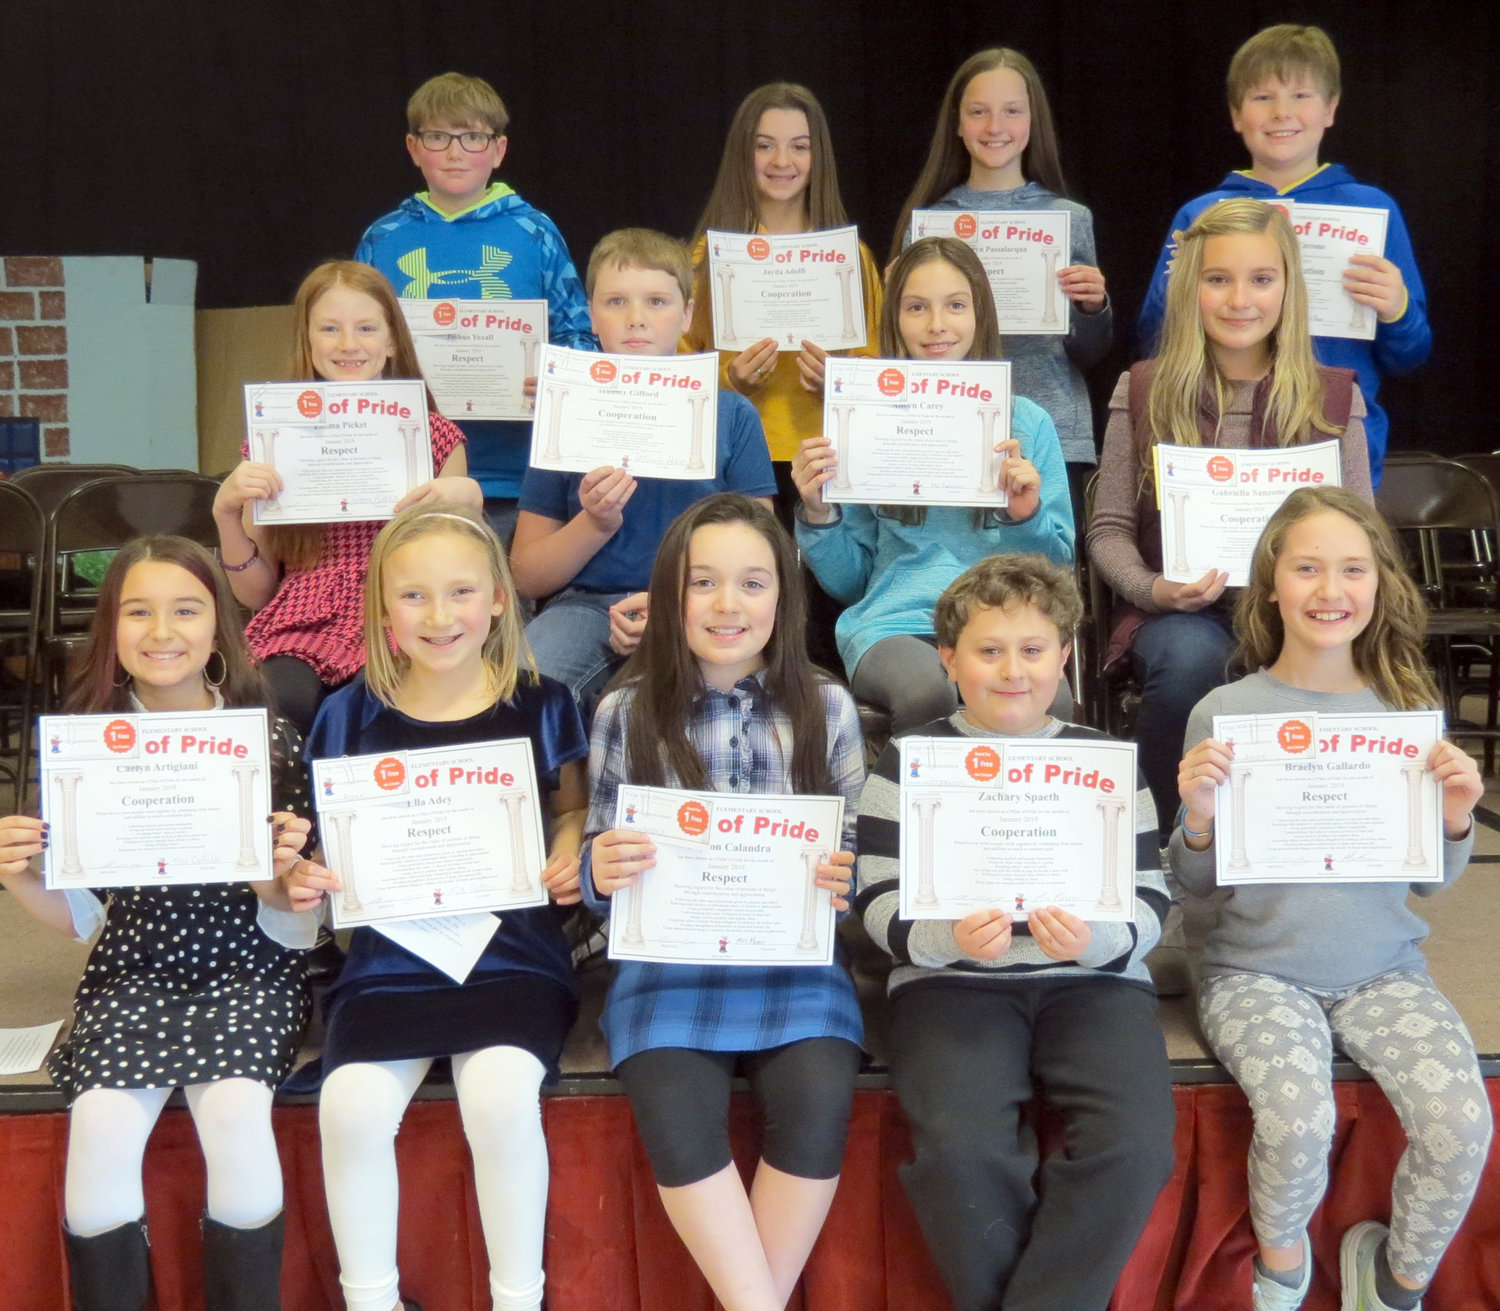 DEMONSTRATING GOOD CHARACTER — Ridge Mills Elementary School recently honored students in grades four through six for displaying the character values of cooperation and respect as part of its Pillars of Pride program. Among the students receiving awards were, from left: front row: Caelyn Artigiani, Ella Adey, Peyton Calandra, Zachary Spaeth, Braelyn Gallardo; middle row: Emma Pickett, Hunter Gifford, Aileen Carey, Gabriella Sanzone; and back row: Josh Yoxall, Jayda Adolfi, Kathryn Passalacqua and Jacob Ciccone.